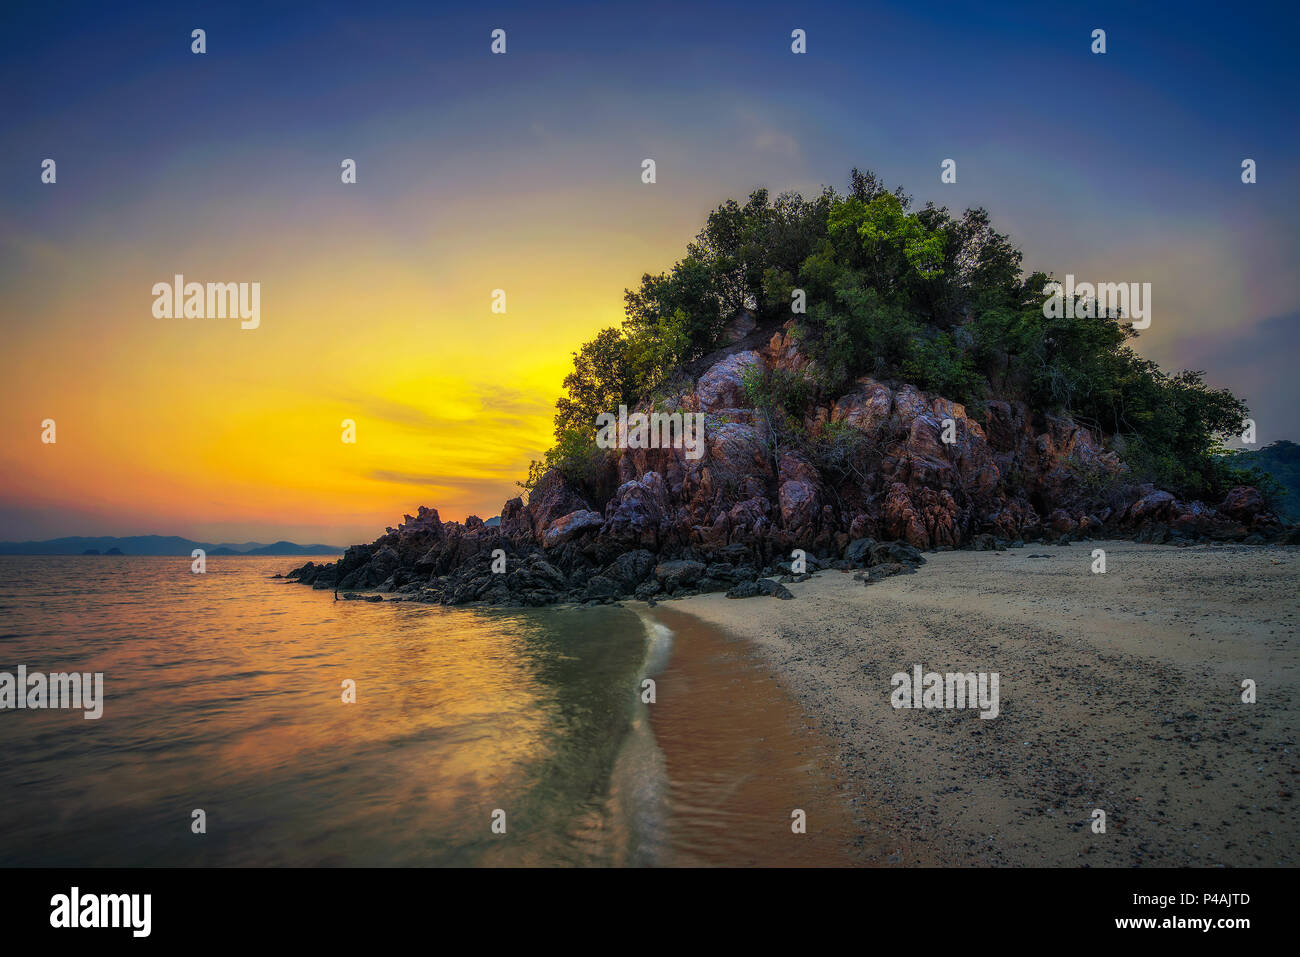 Sunset over Laopilae archipelago around Ko Hong island near Krabi, Thailand - Stock Image